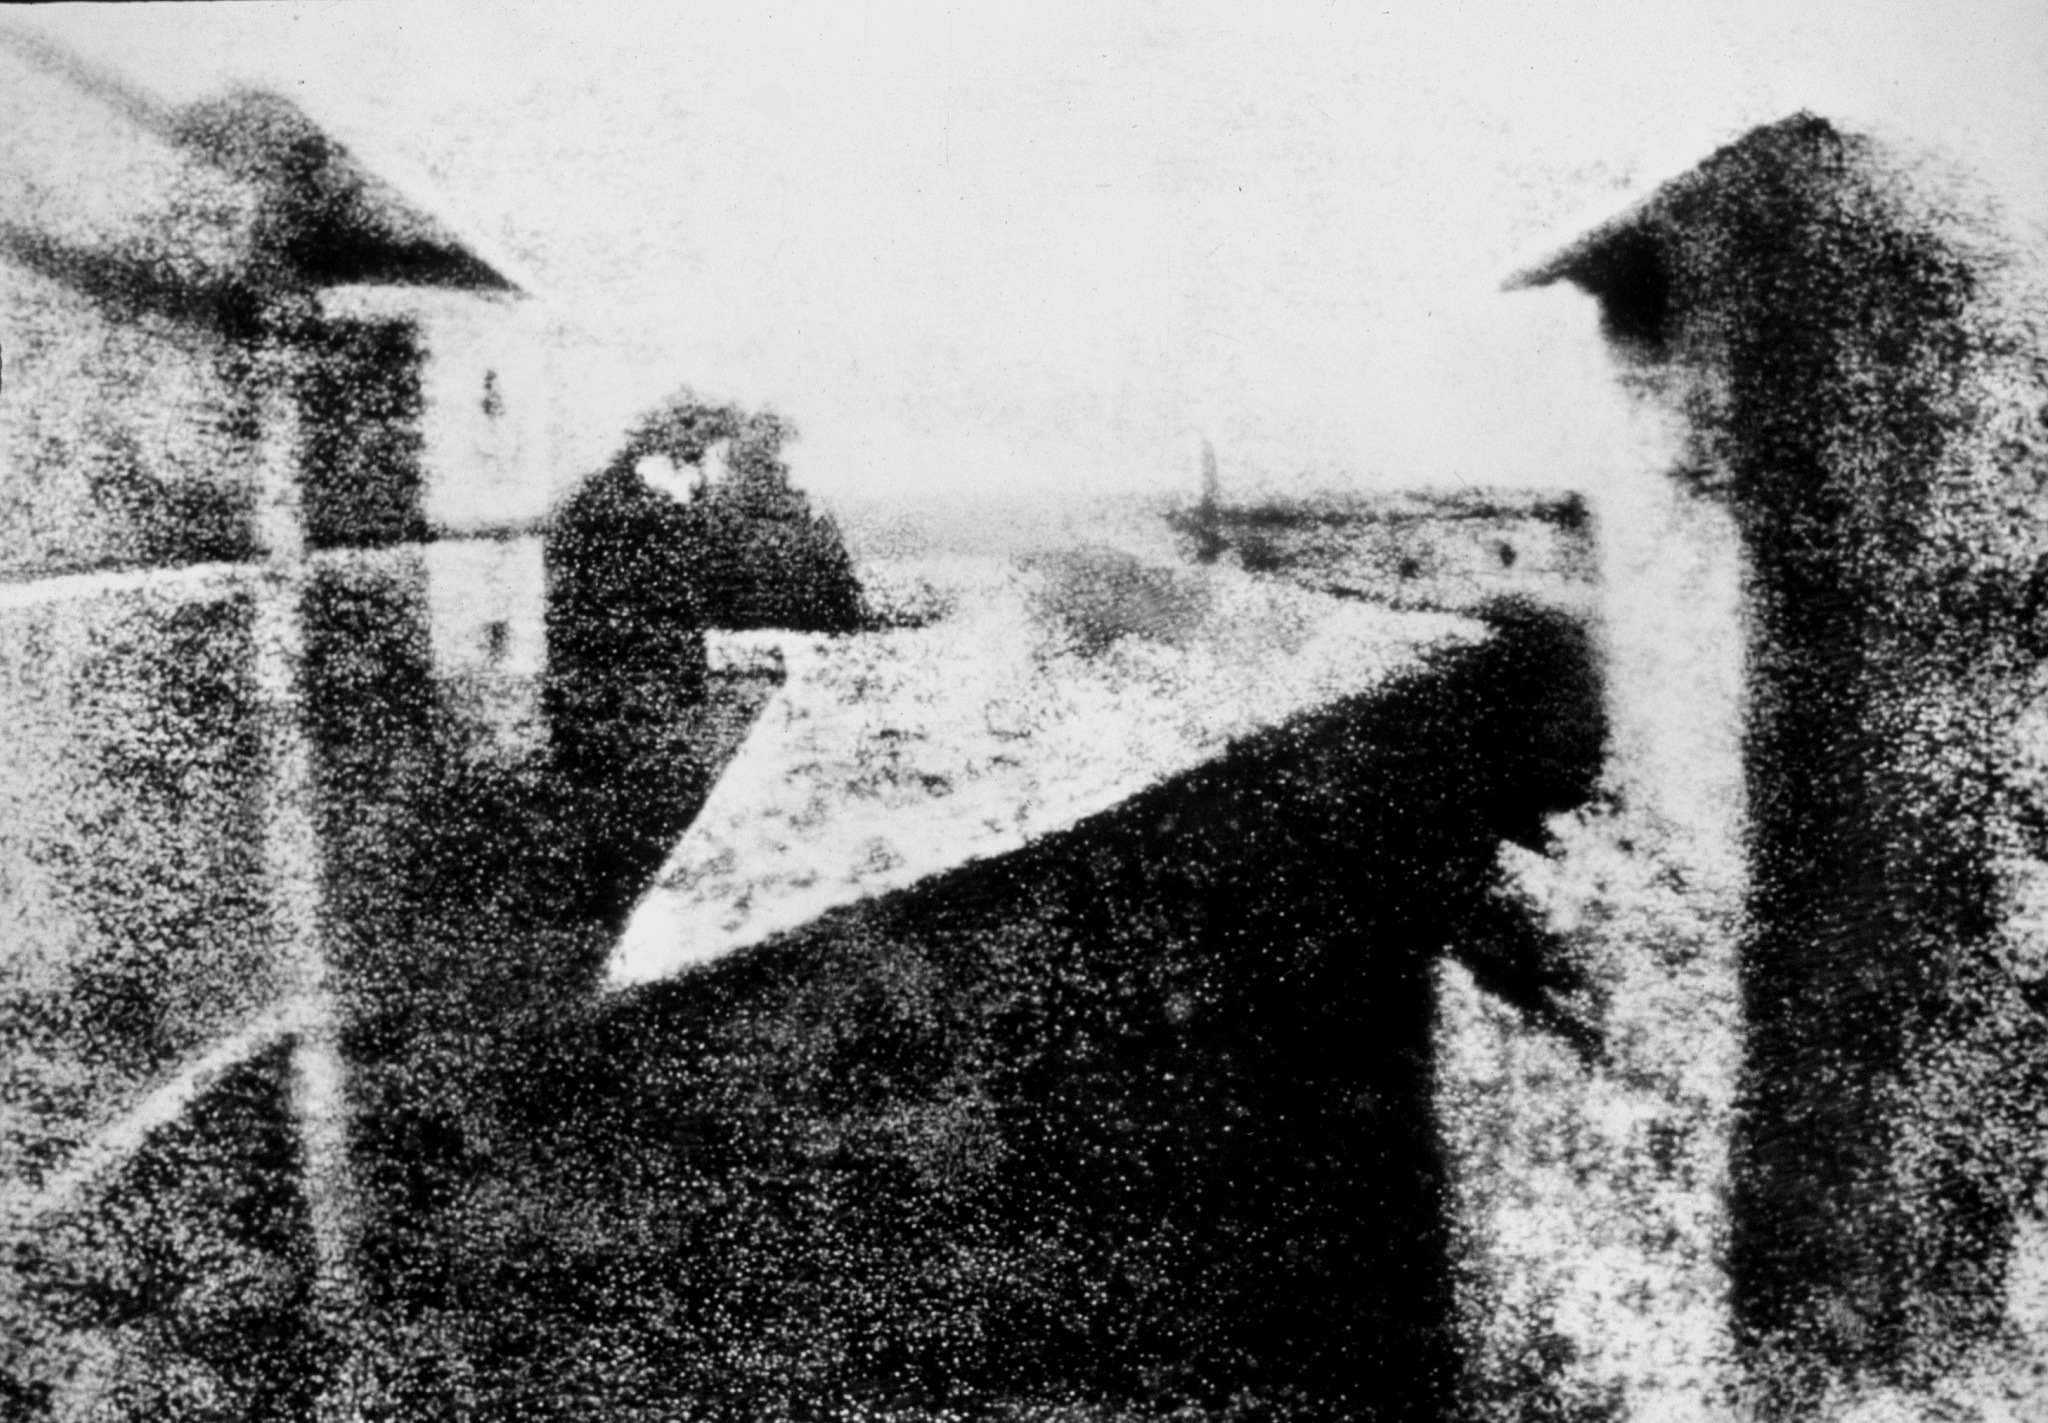 First photograph in history by Amaury Astier